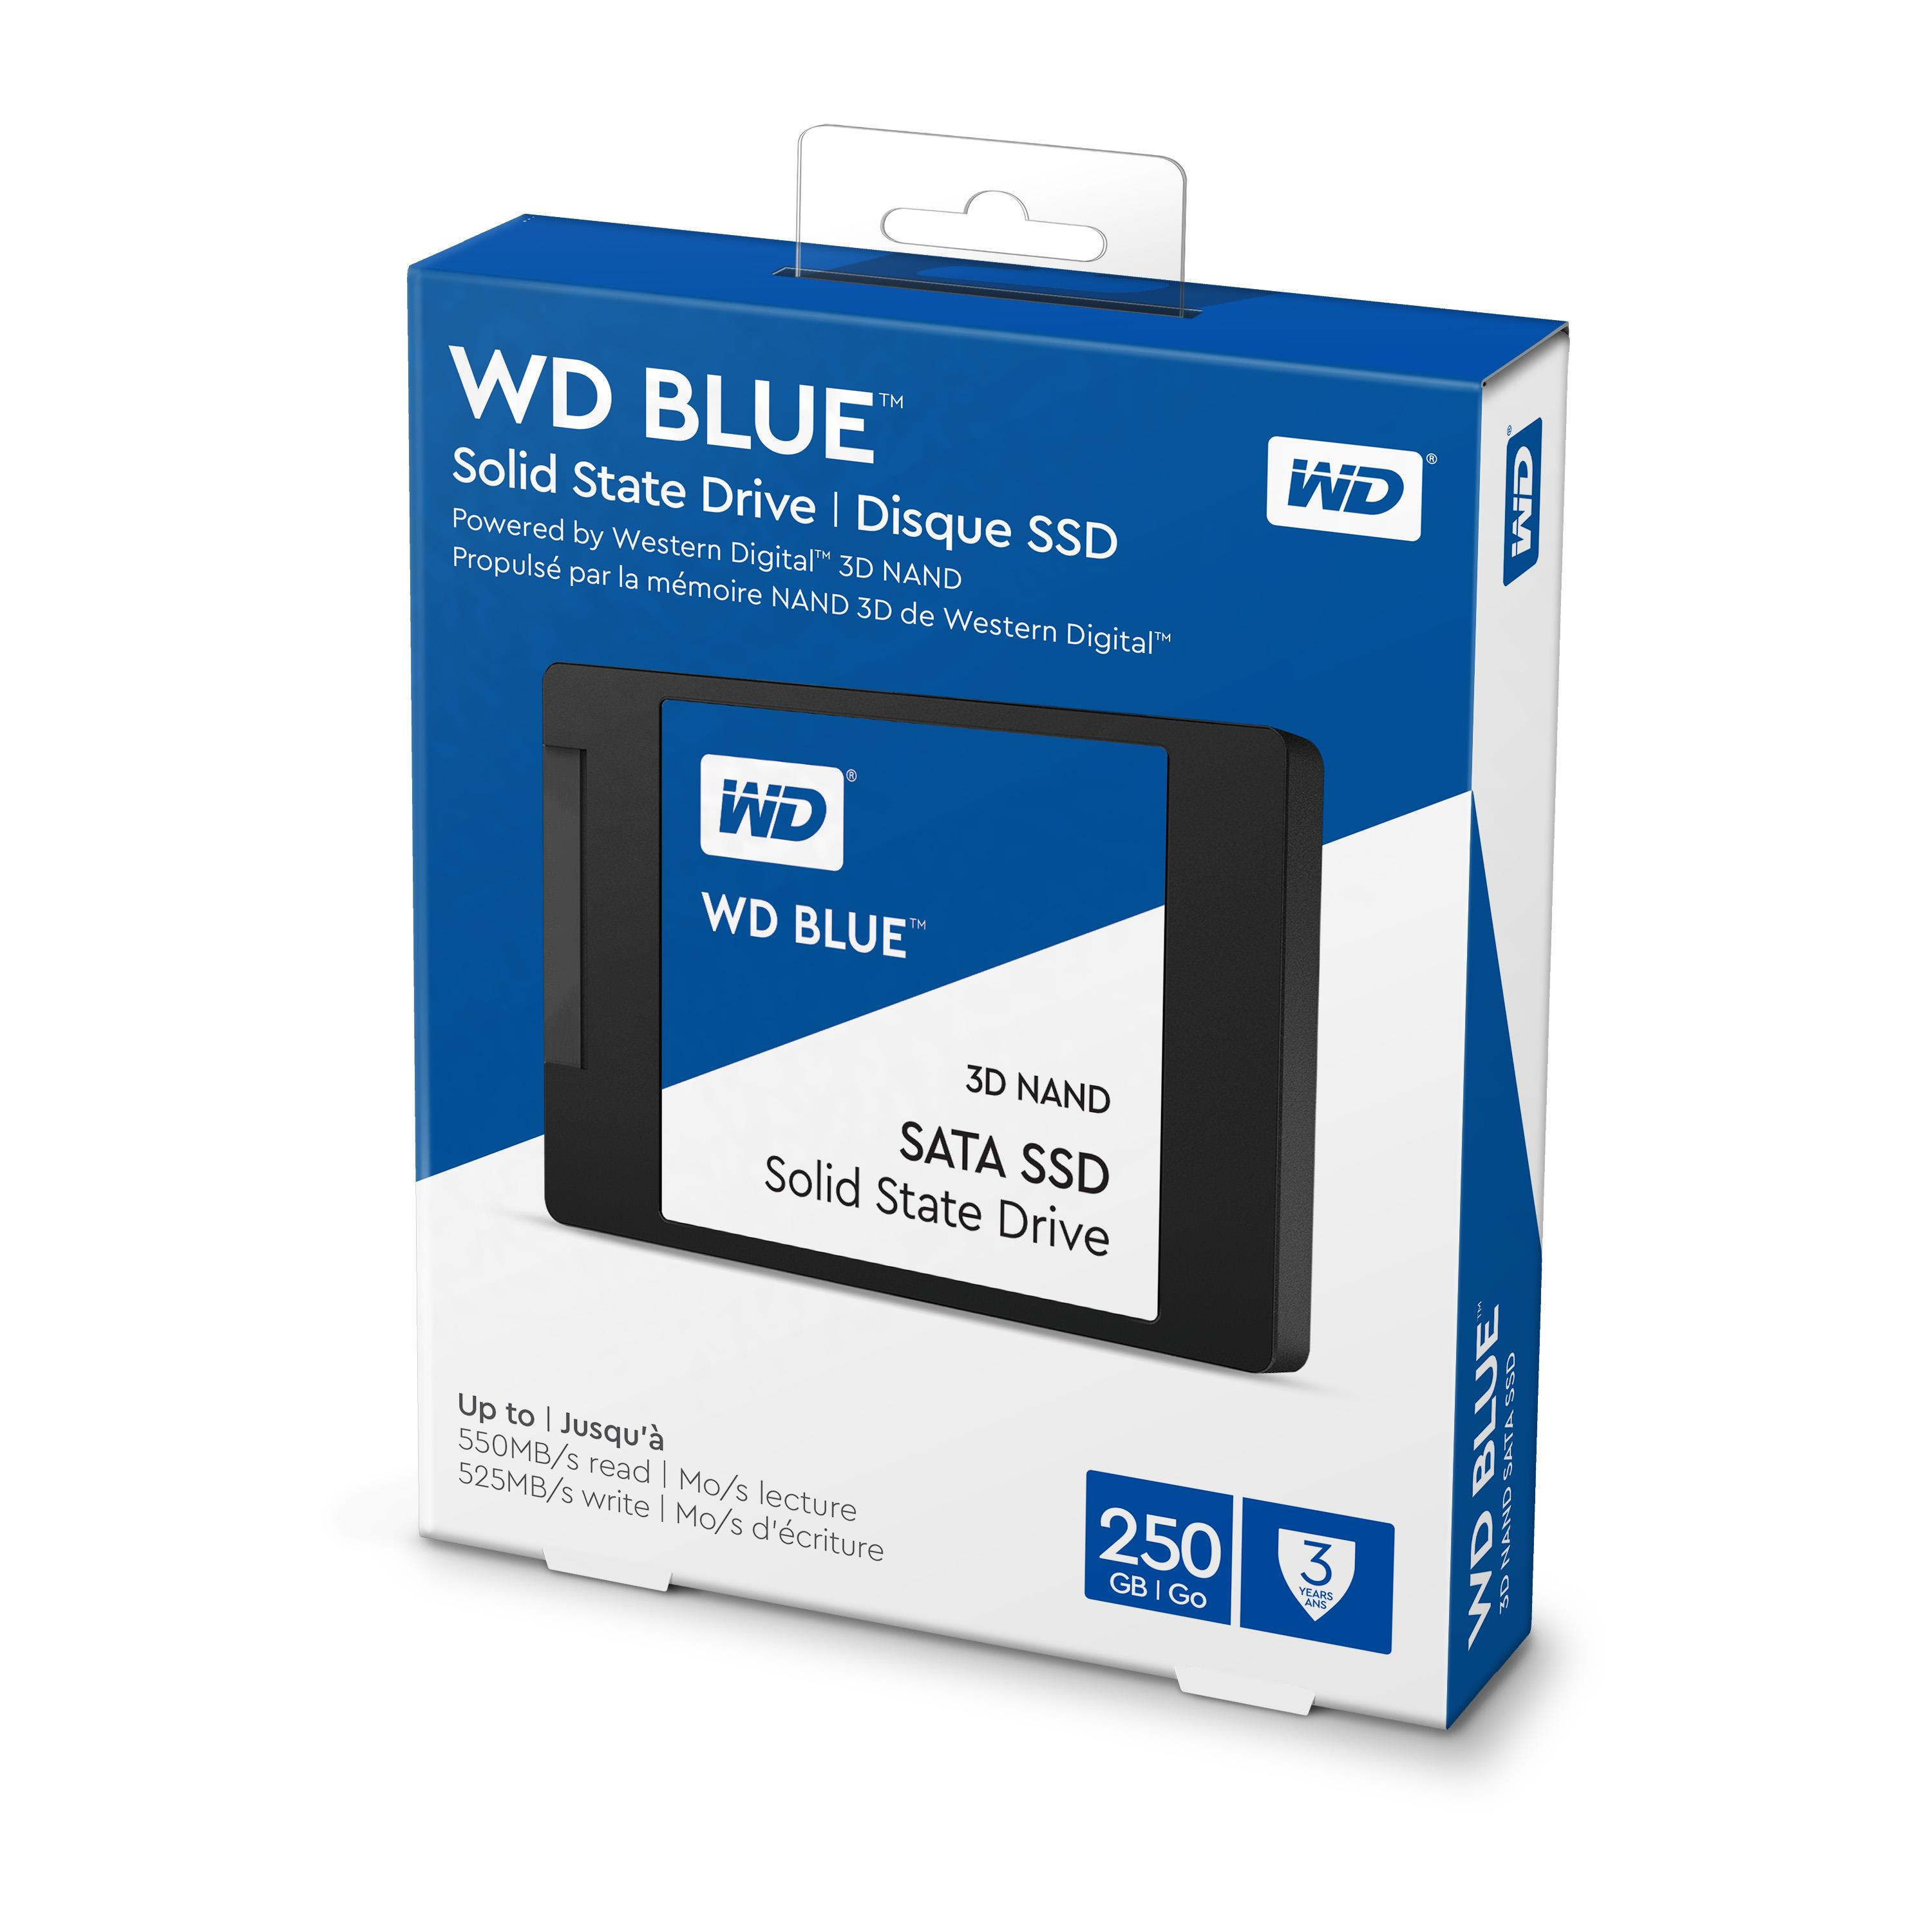 WD Blue (250GB) 3D NAND SATA 2.5 inch Solid State Drive